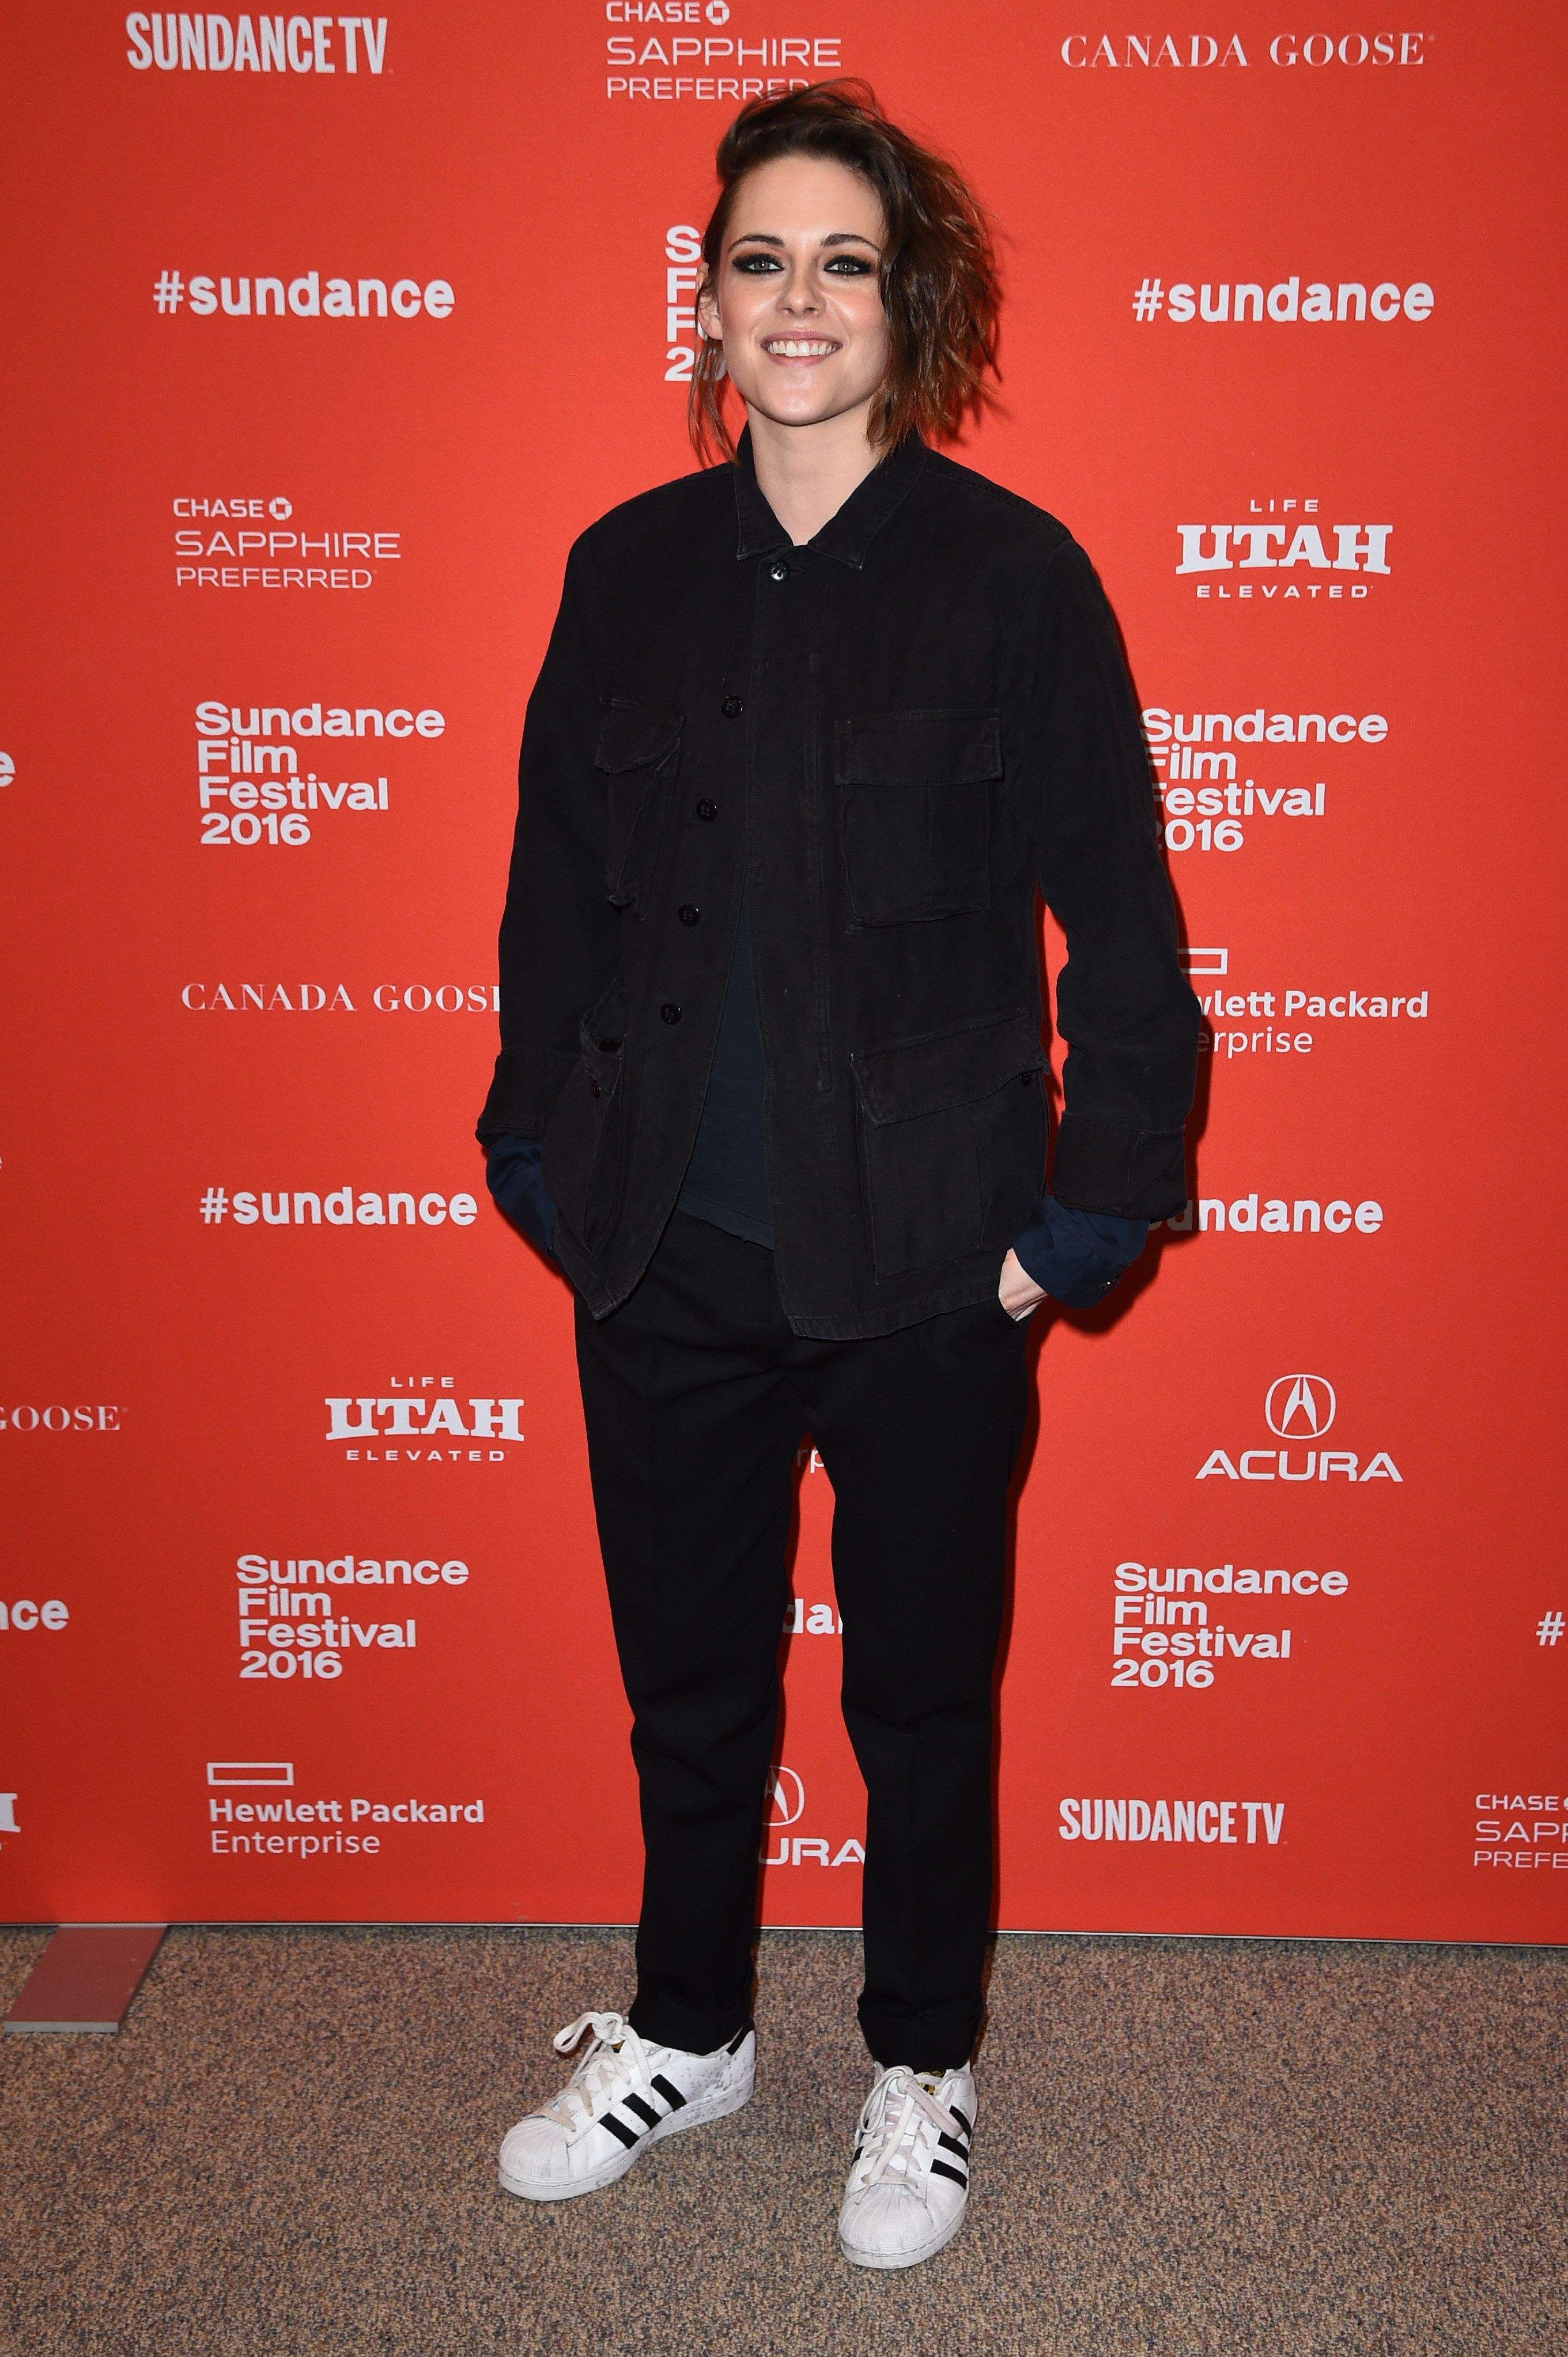 PARK CITY, UT - JANUARY 24:  Actress Kristen Stewart attends the 'Certain Women' Premiere during the 2016 Sundance Film Festival at Eccles Center Theatre on January 24, 2016 in Park City, Utah.  (Photo by Nicholas Hunt/Getty Images for Sundance Film Festival)